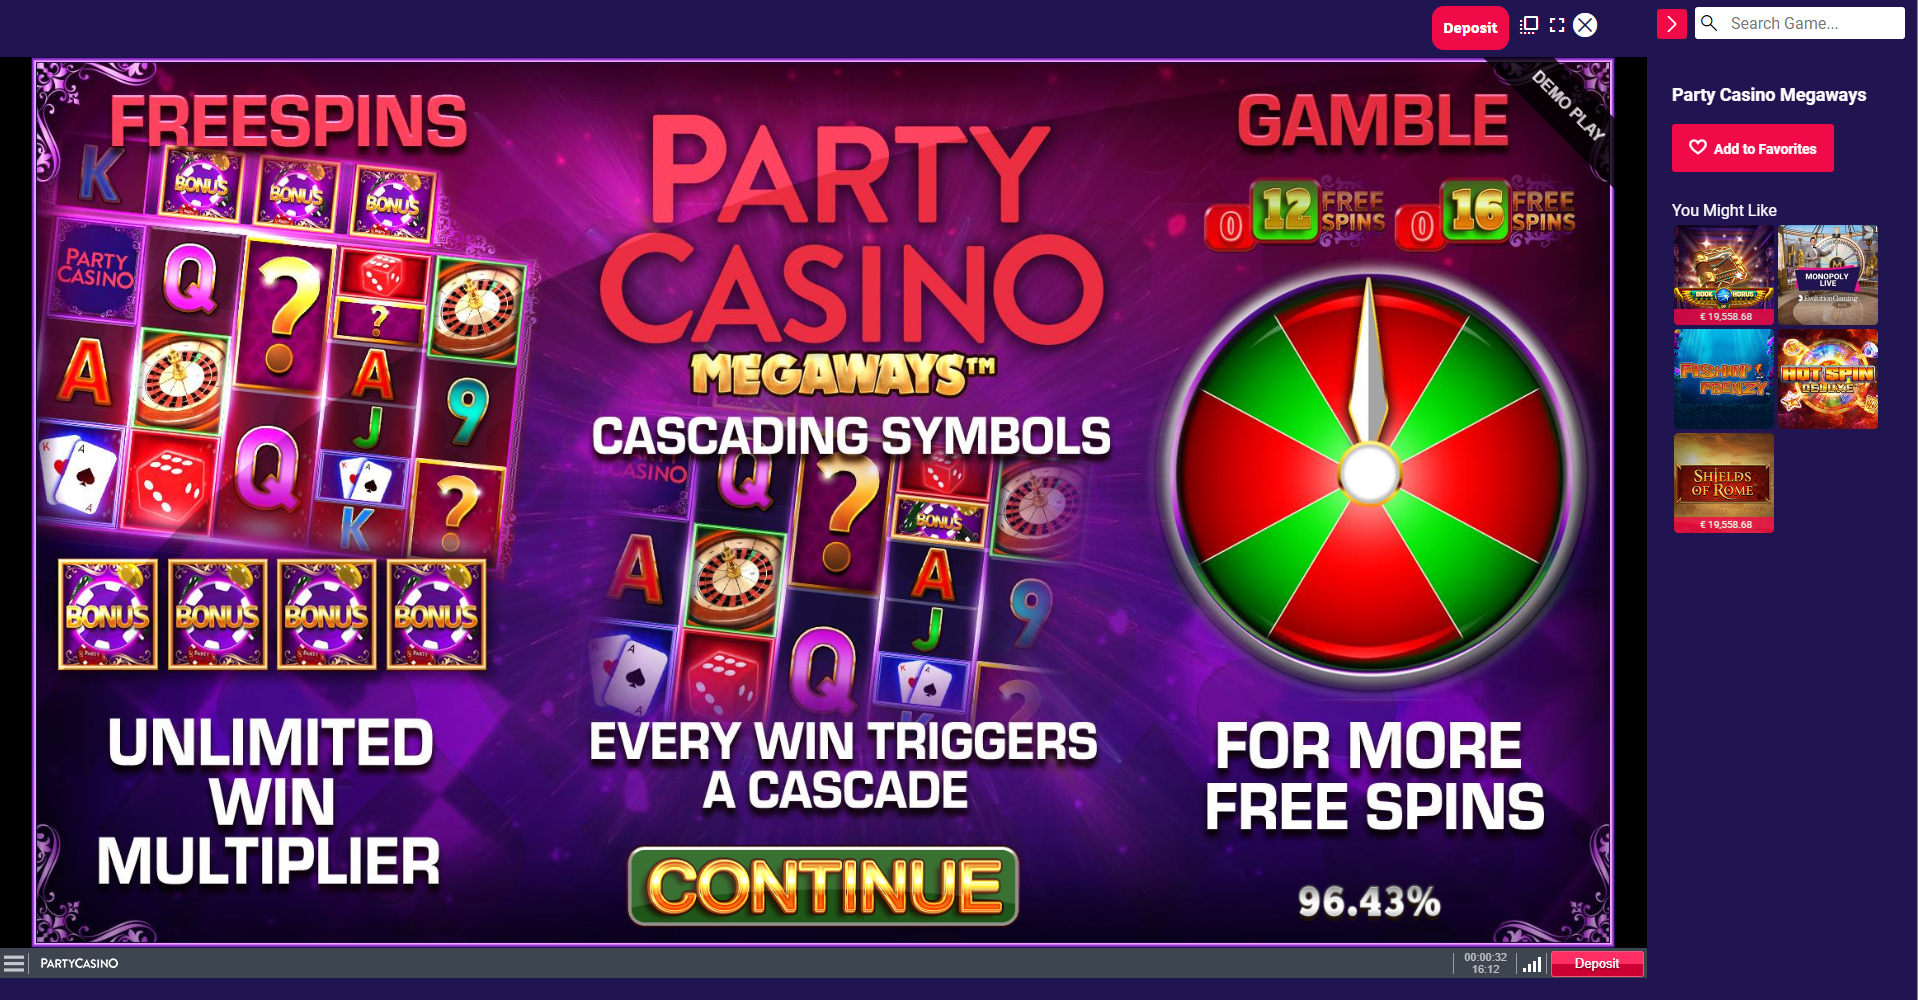 partycasino megaways free spins unlimited multiplier